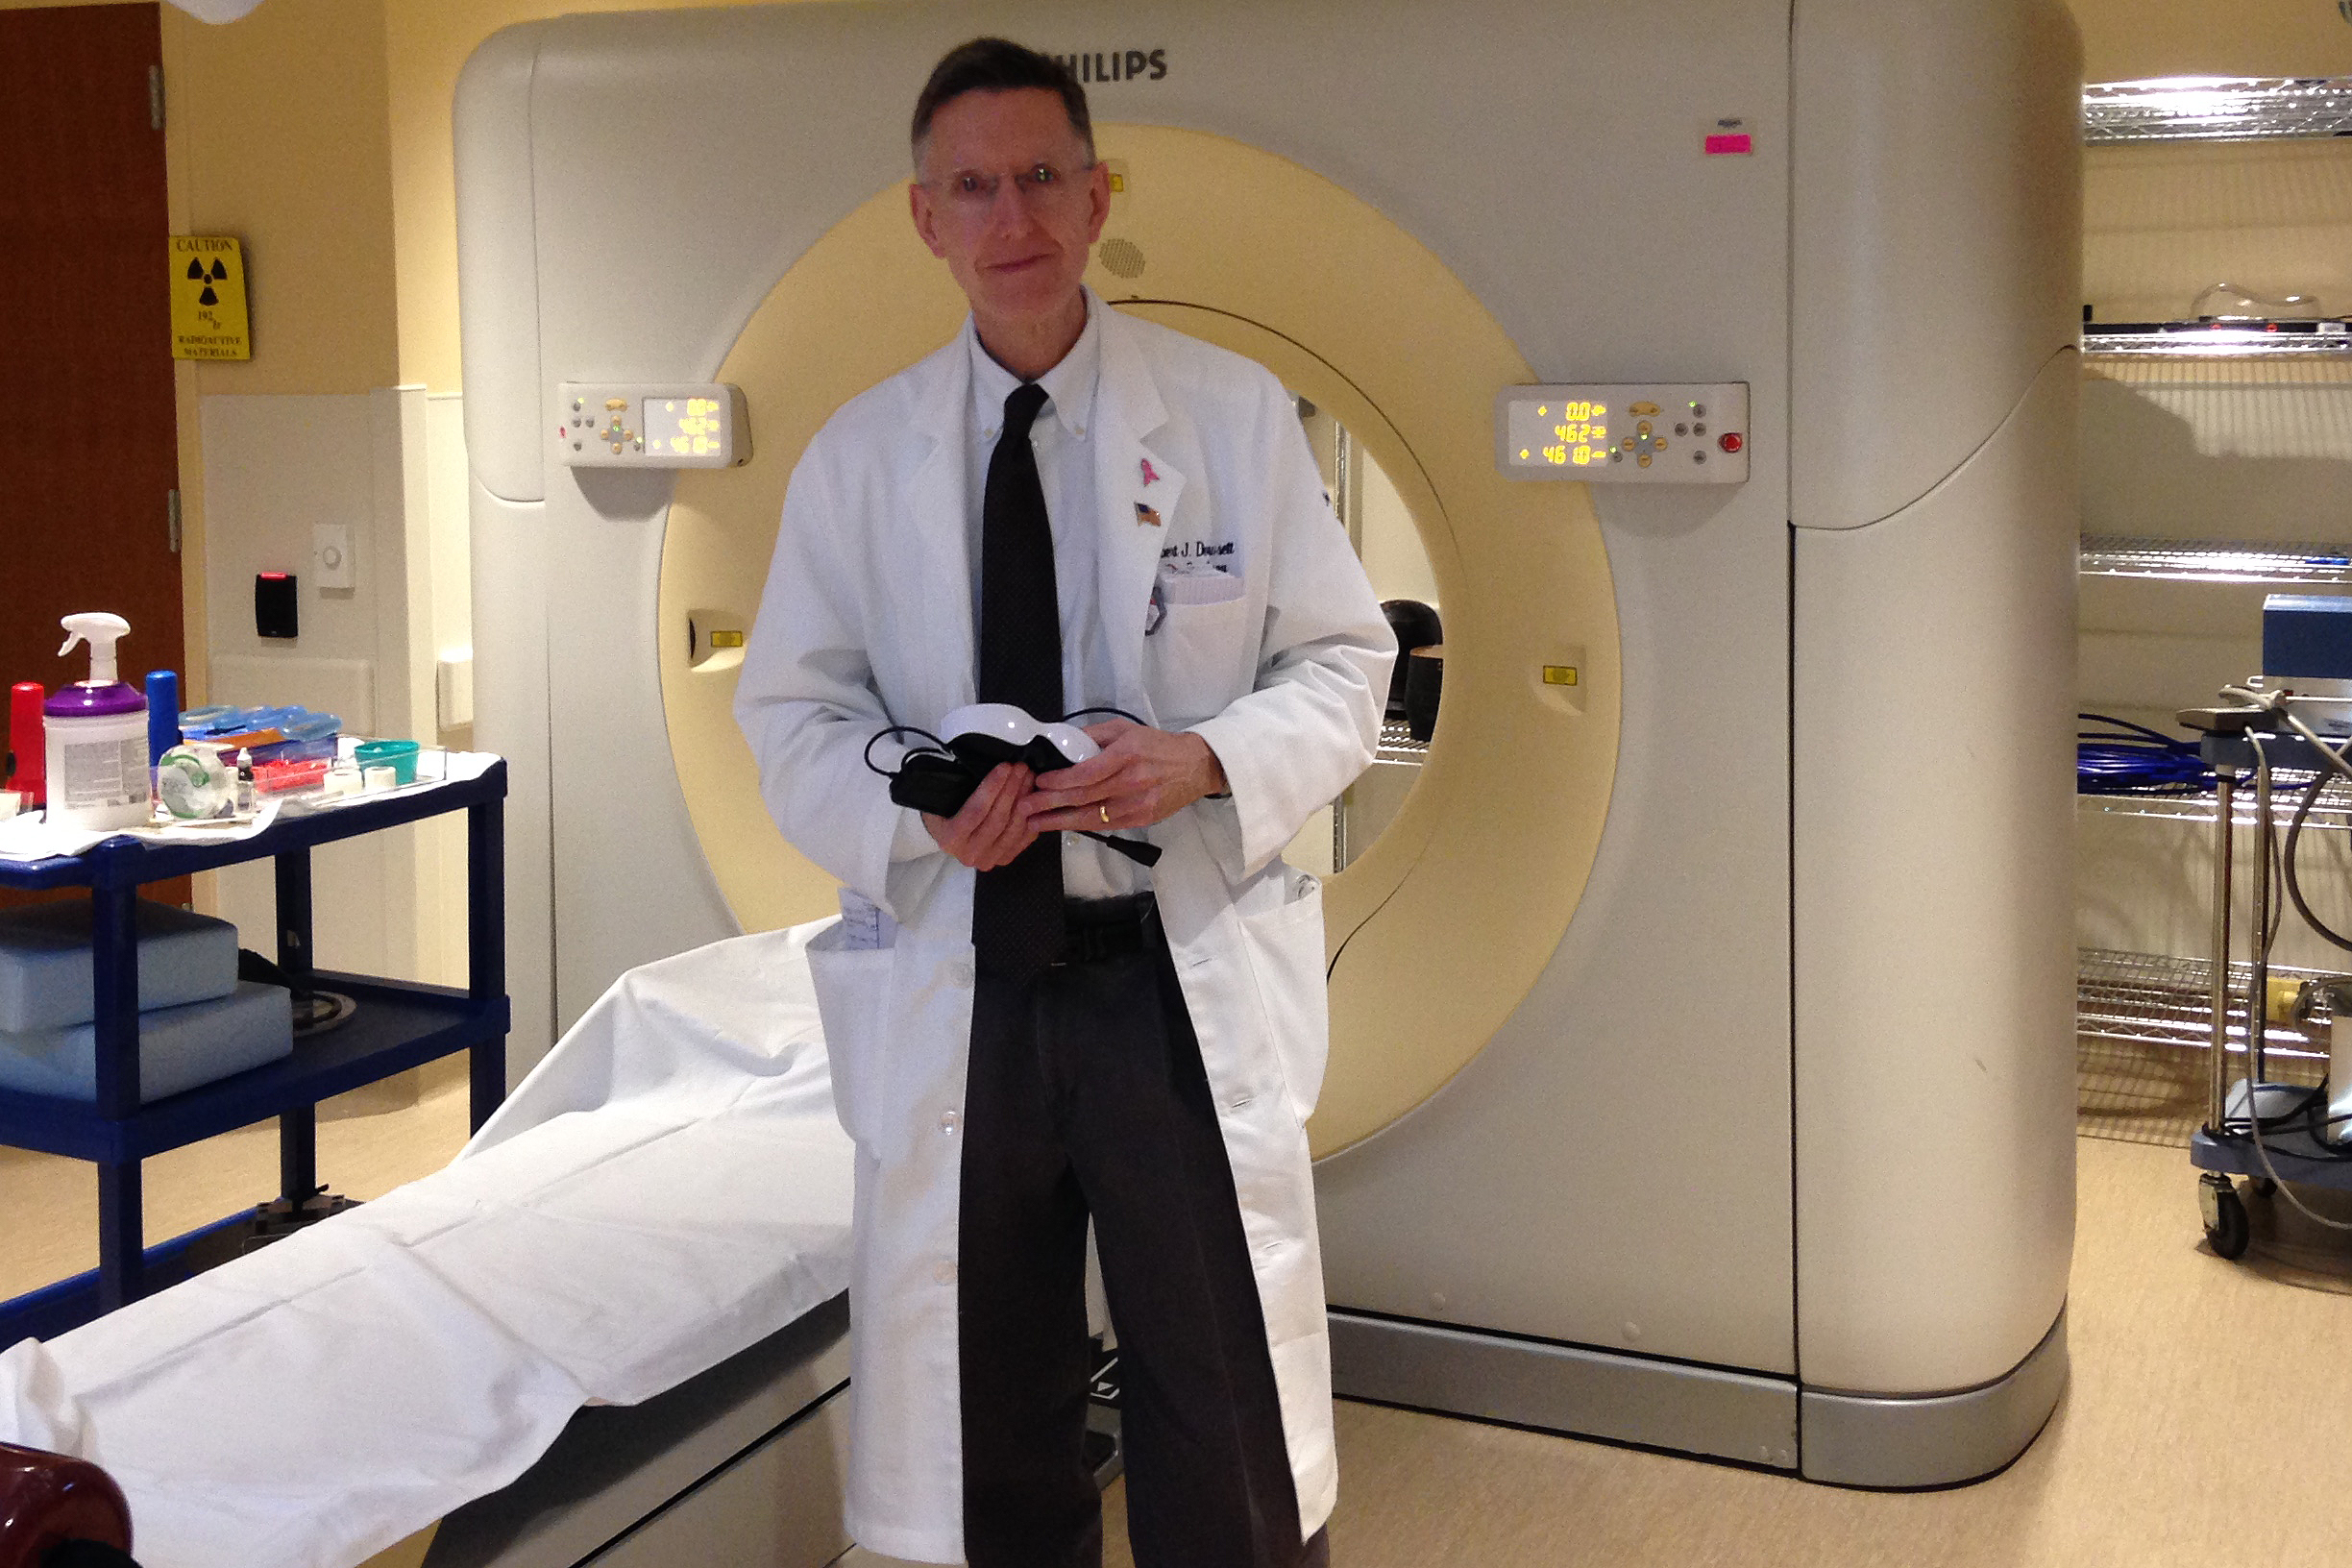 Radiation oncologist Dr. Dowsett with CT Scan technology in the Radiation Planning (simulation) Room at the Carole and Ray Neag Comprehensive Cancer Center at UConn Health. (Lauren Woods/UConn Health Photo)